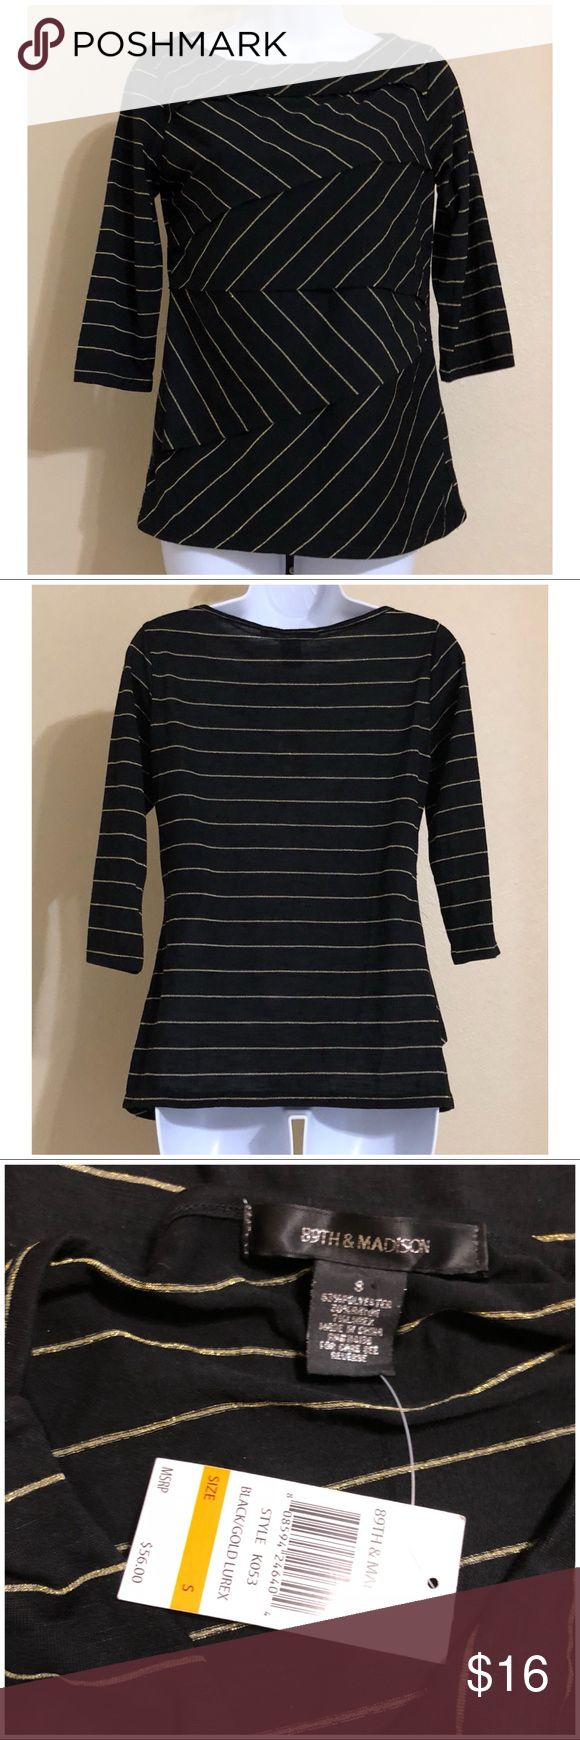 89th & Madison Blouse Size 8 89th & Madison Women's Blouse Size 8 Black & Gold Colors Black With Gold Metallic Look Stripes 3/4 Sleeve Diagonal Cut Tiered Front Machine Washable 63% Polyester 30% Rayon 7% Lurex Armpit to Armpit Approx. 17 Inches Length From Rear Collar Approx. 27 Inches Shoulder Approx. 15 Inches Sleeve From Shoulder Seam Approx. 16 Inches Please Measure To Ensure A Great Fit MSRP $ 56.00 New With Tag 89th & Madison Tops Blouses